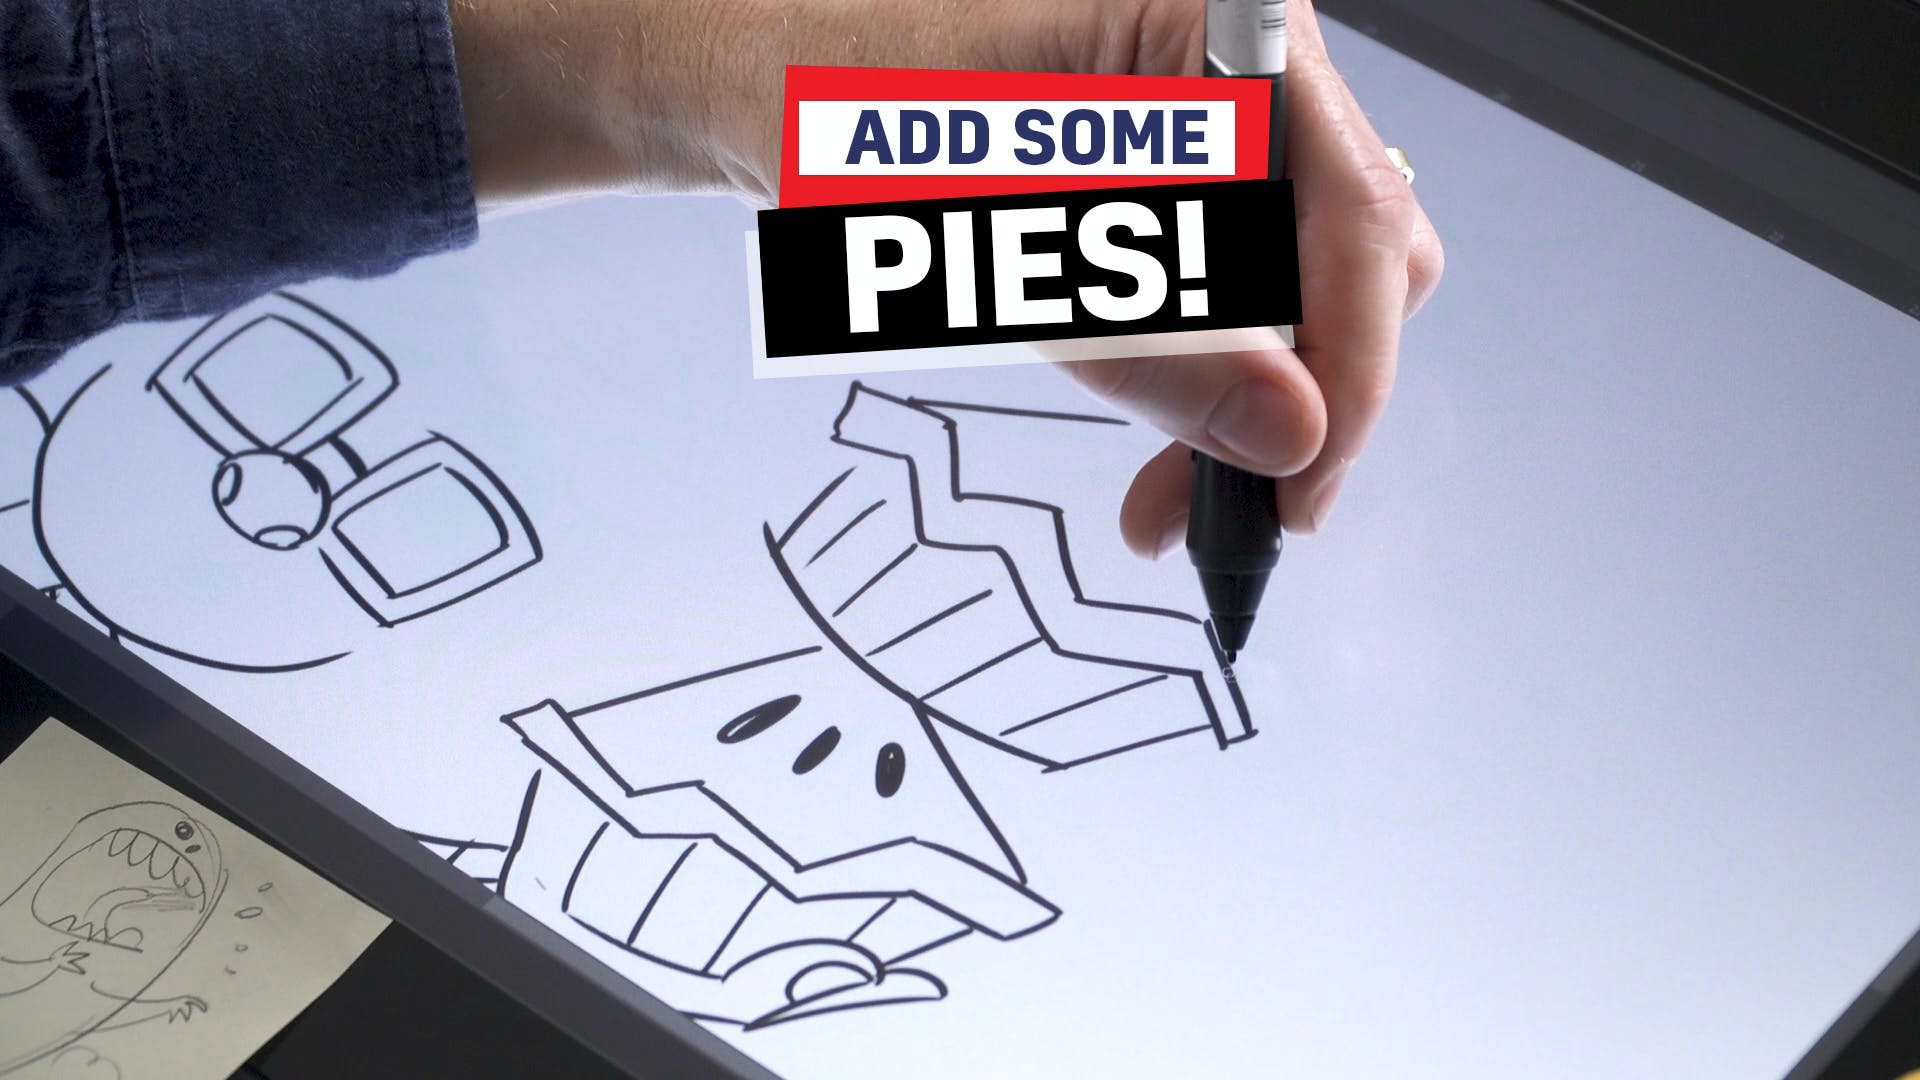 Ross drawing Pieface's pies